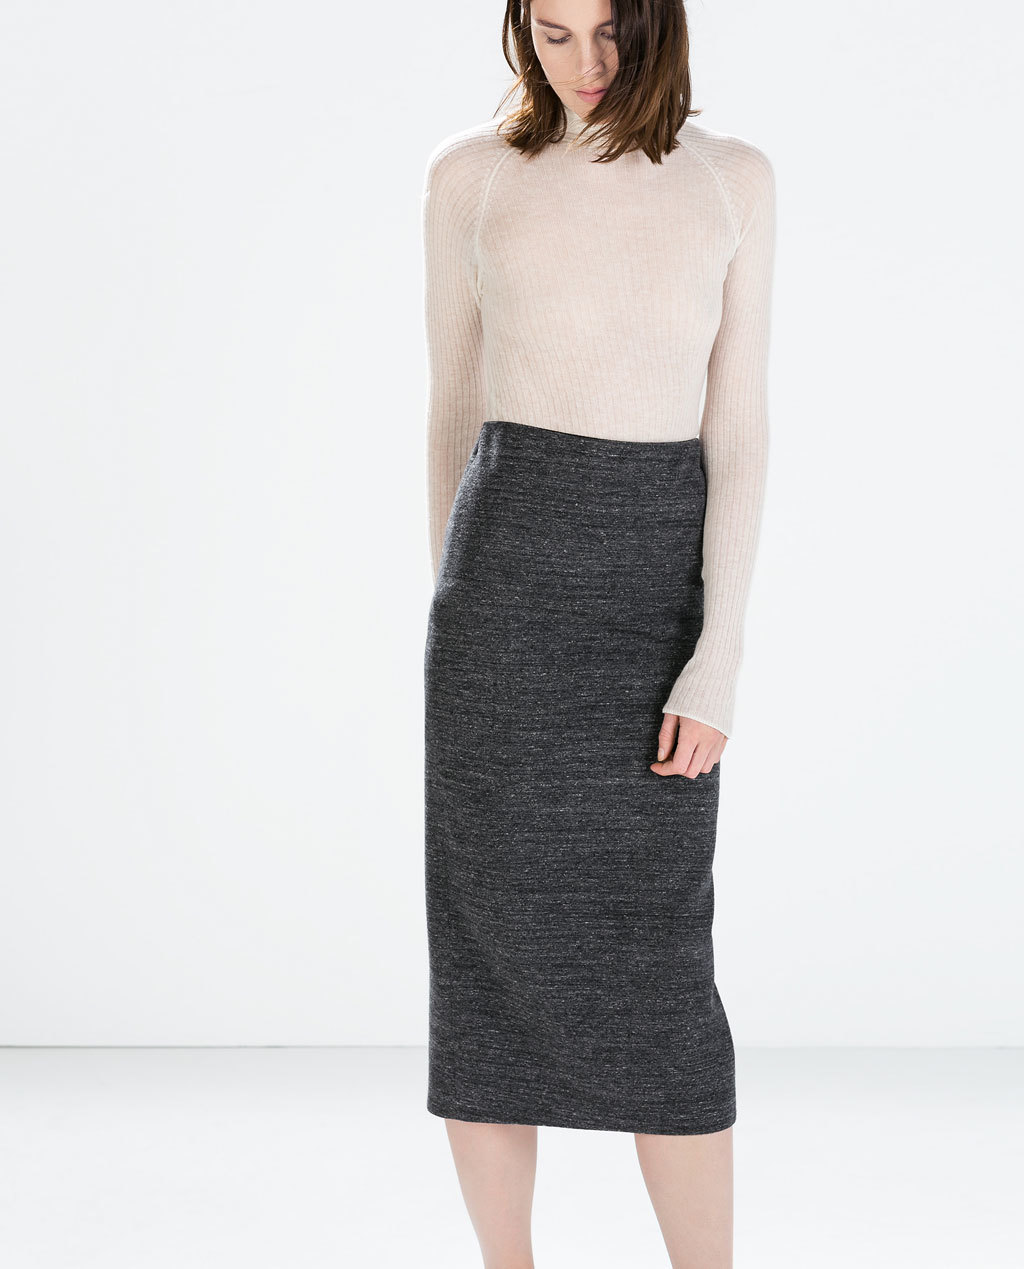 Knit Midi Pencil Skirt - length: below the knee; pattern: plain; style: pencil; fit: tailored/fitted; waist: high rise; predominant colour: charcoal; occasions: work, creative work; fibres: cotton - mix; pattern type: fabric; texture group: woven light midweight; season: a/w 2014